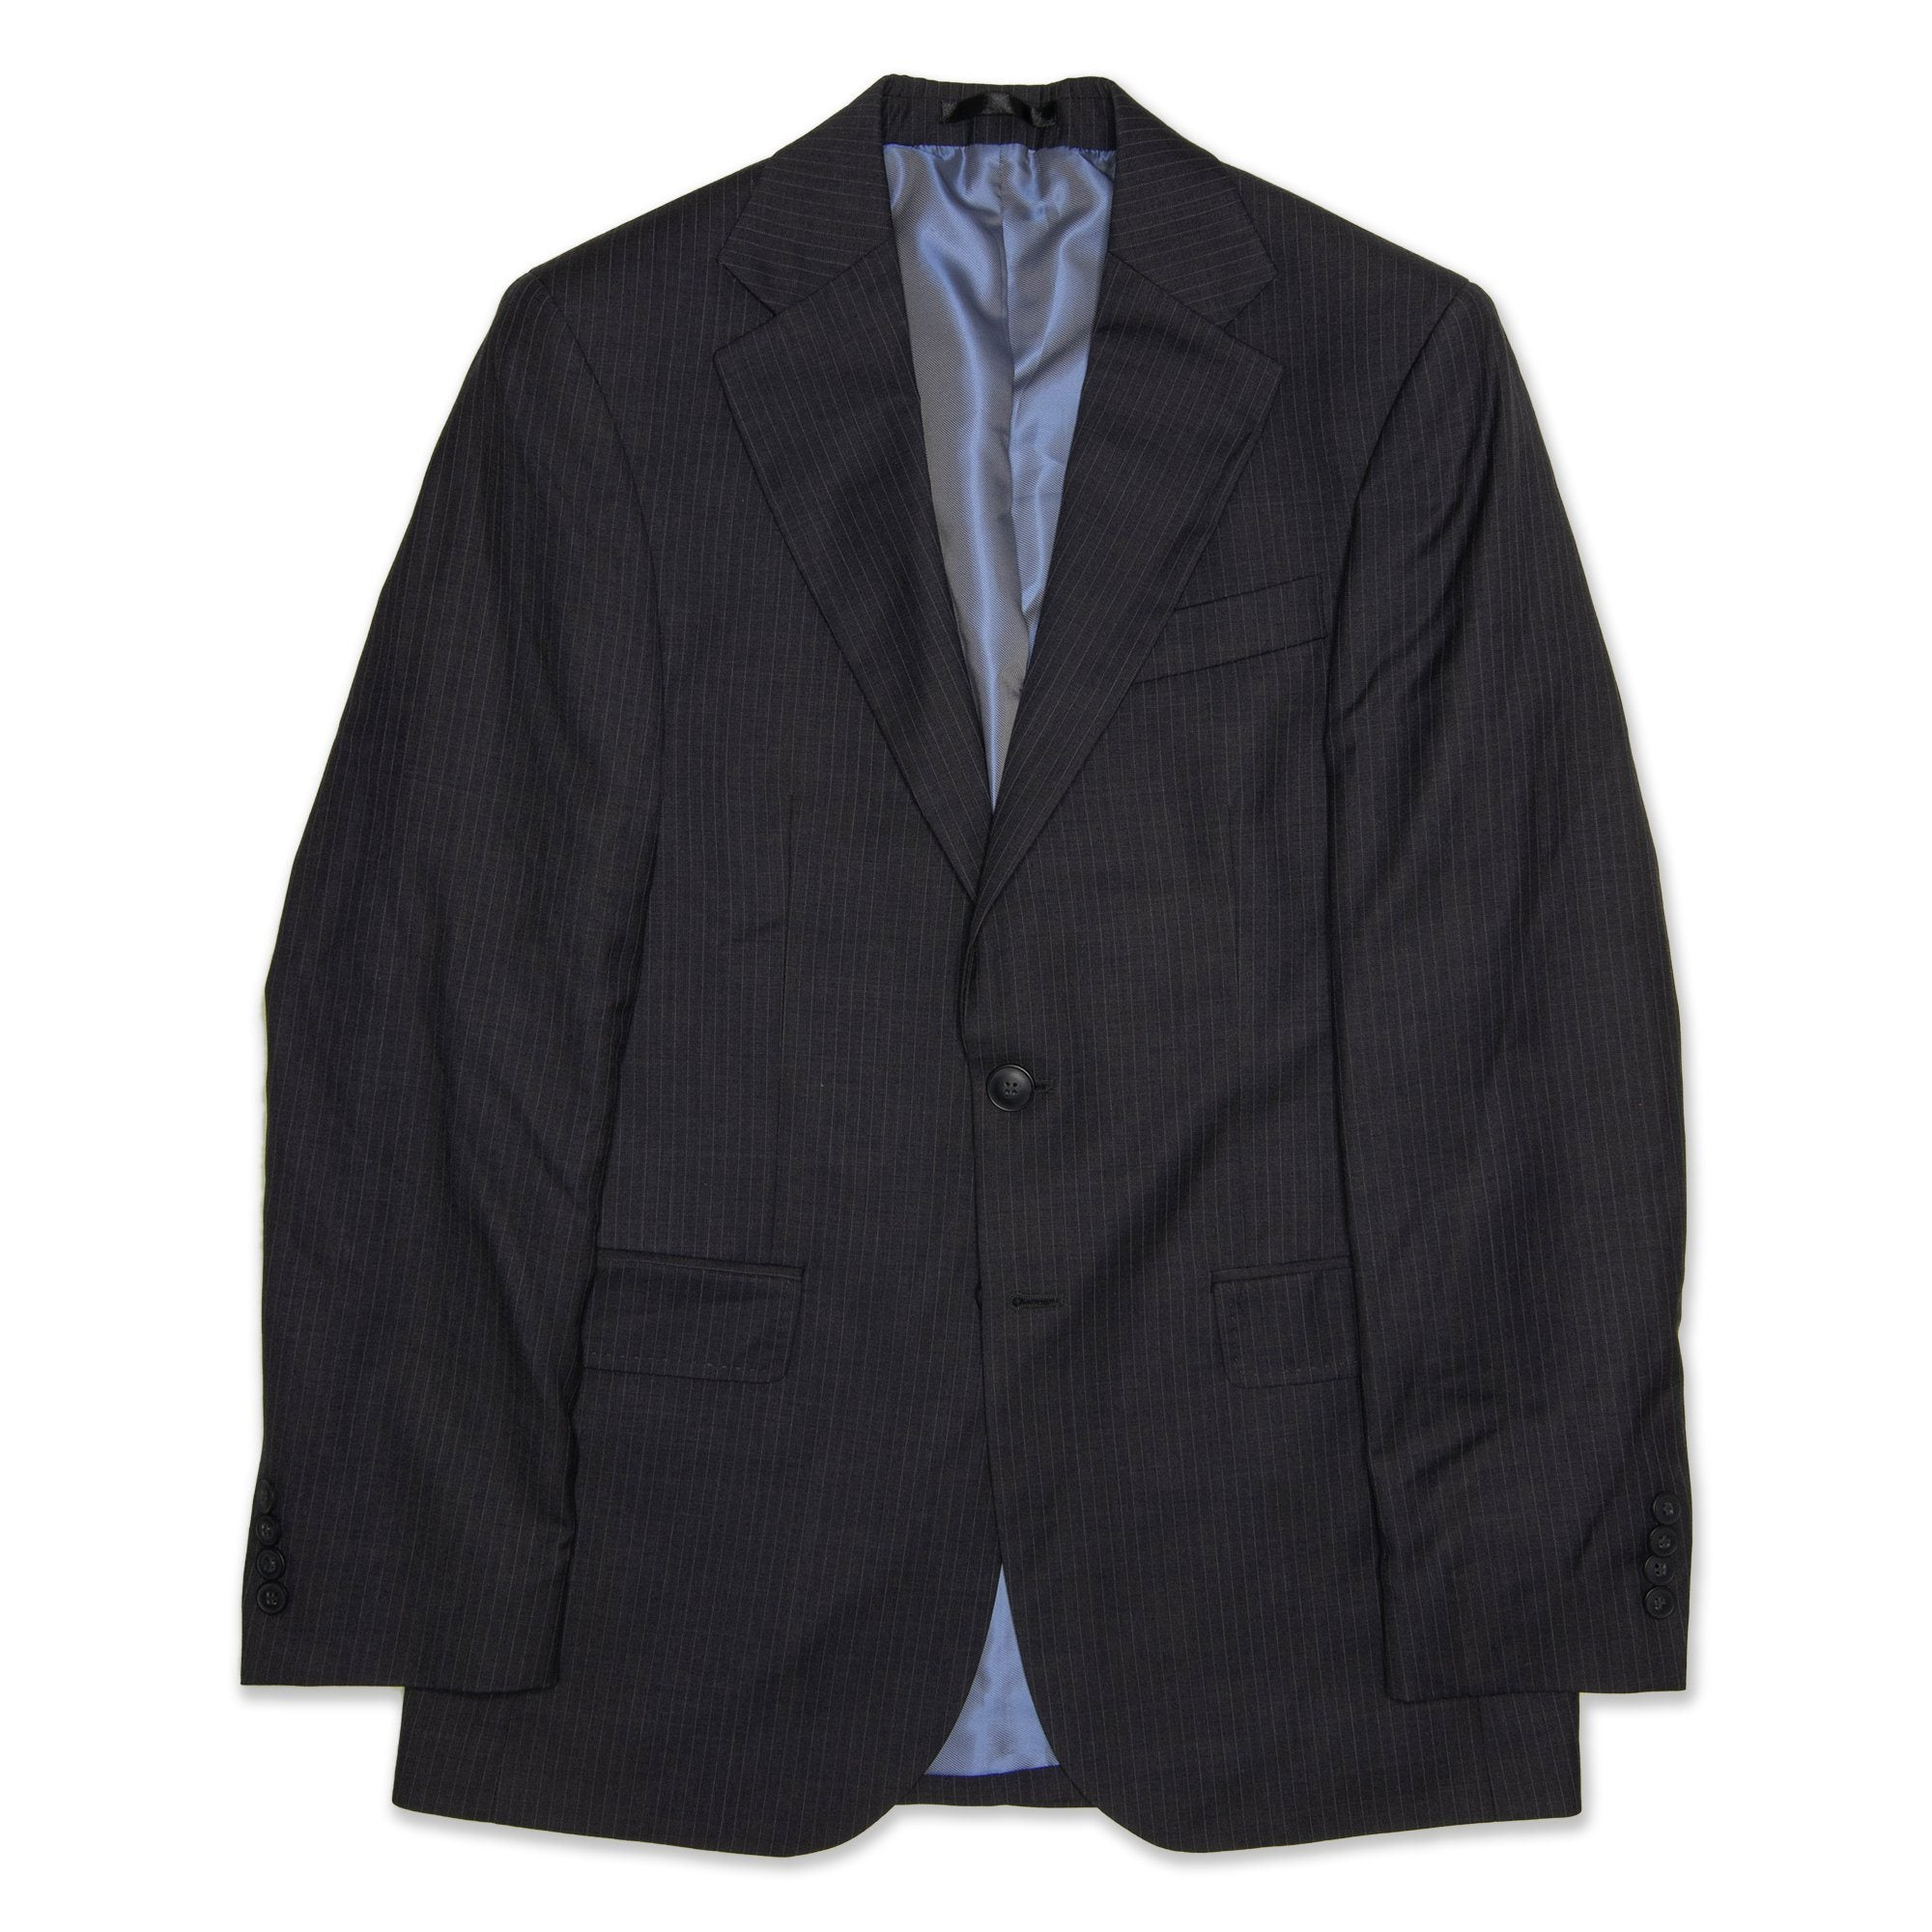 StyleCorp Single Breasted Men's Jacket Striped- Charcoal Workwear StyleCorp